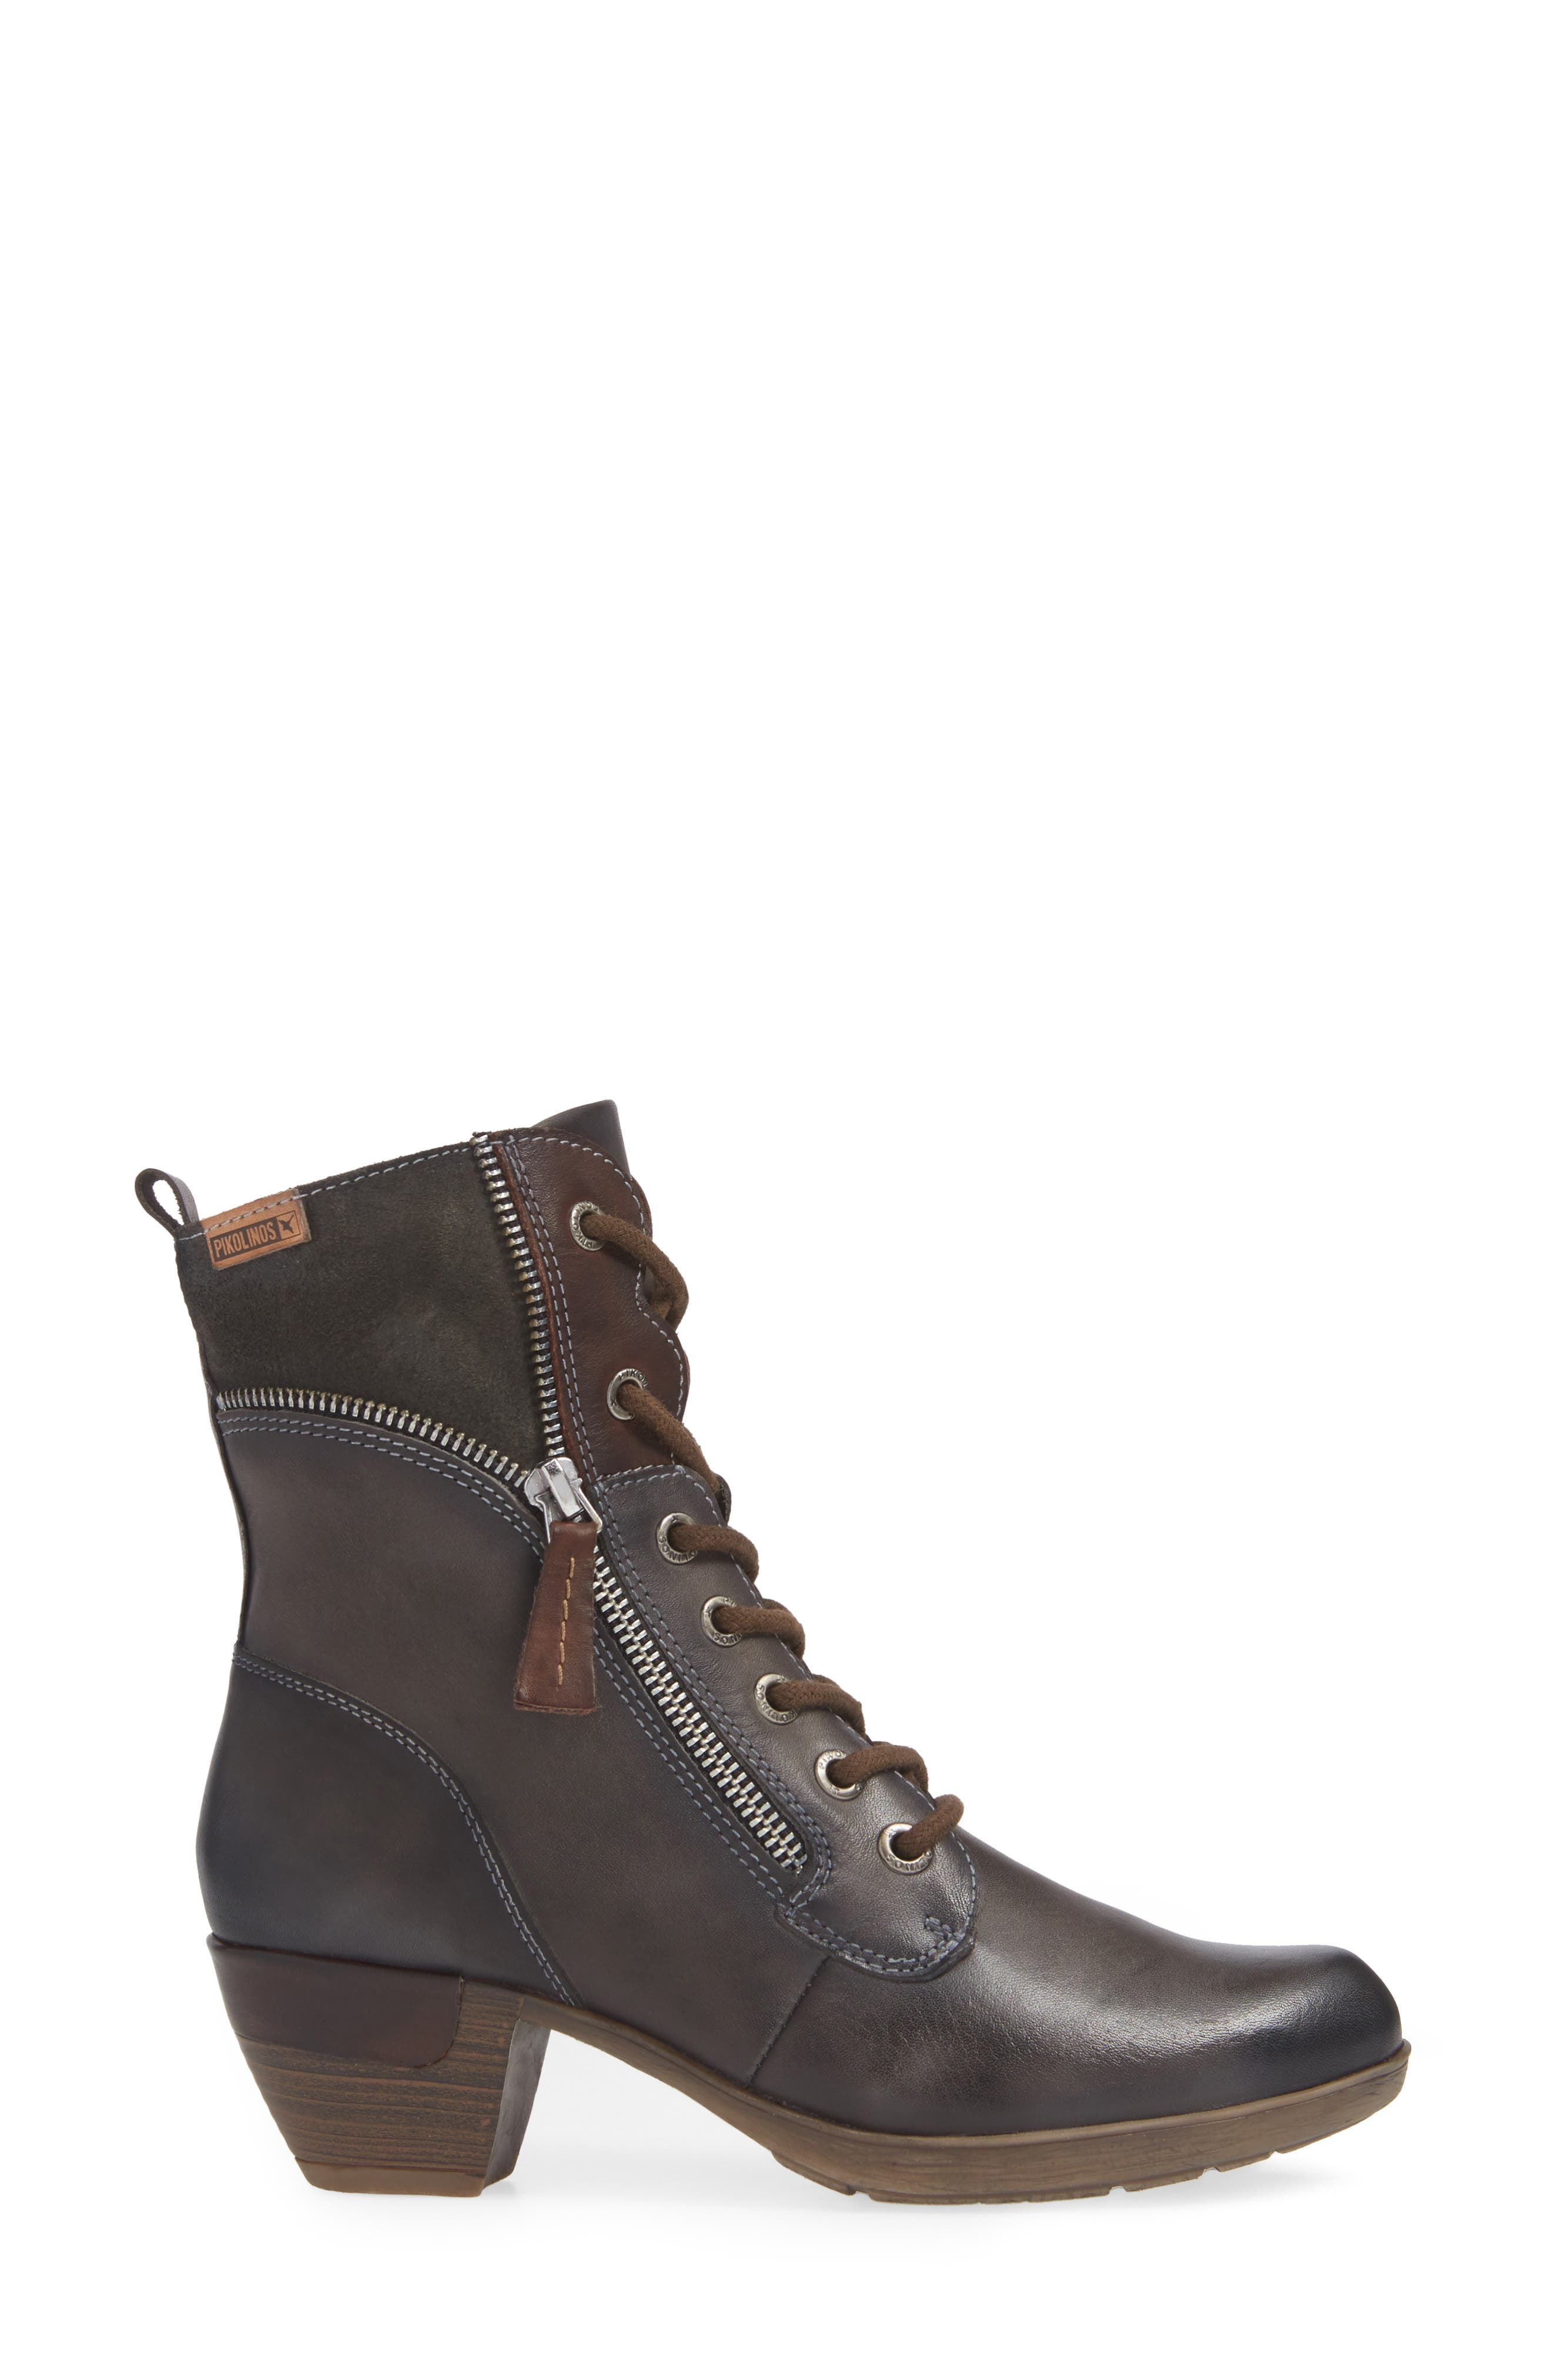 Rotterdam Bootie,                             Alternate thumbnail 3, color,                             LEAD LEATHER